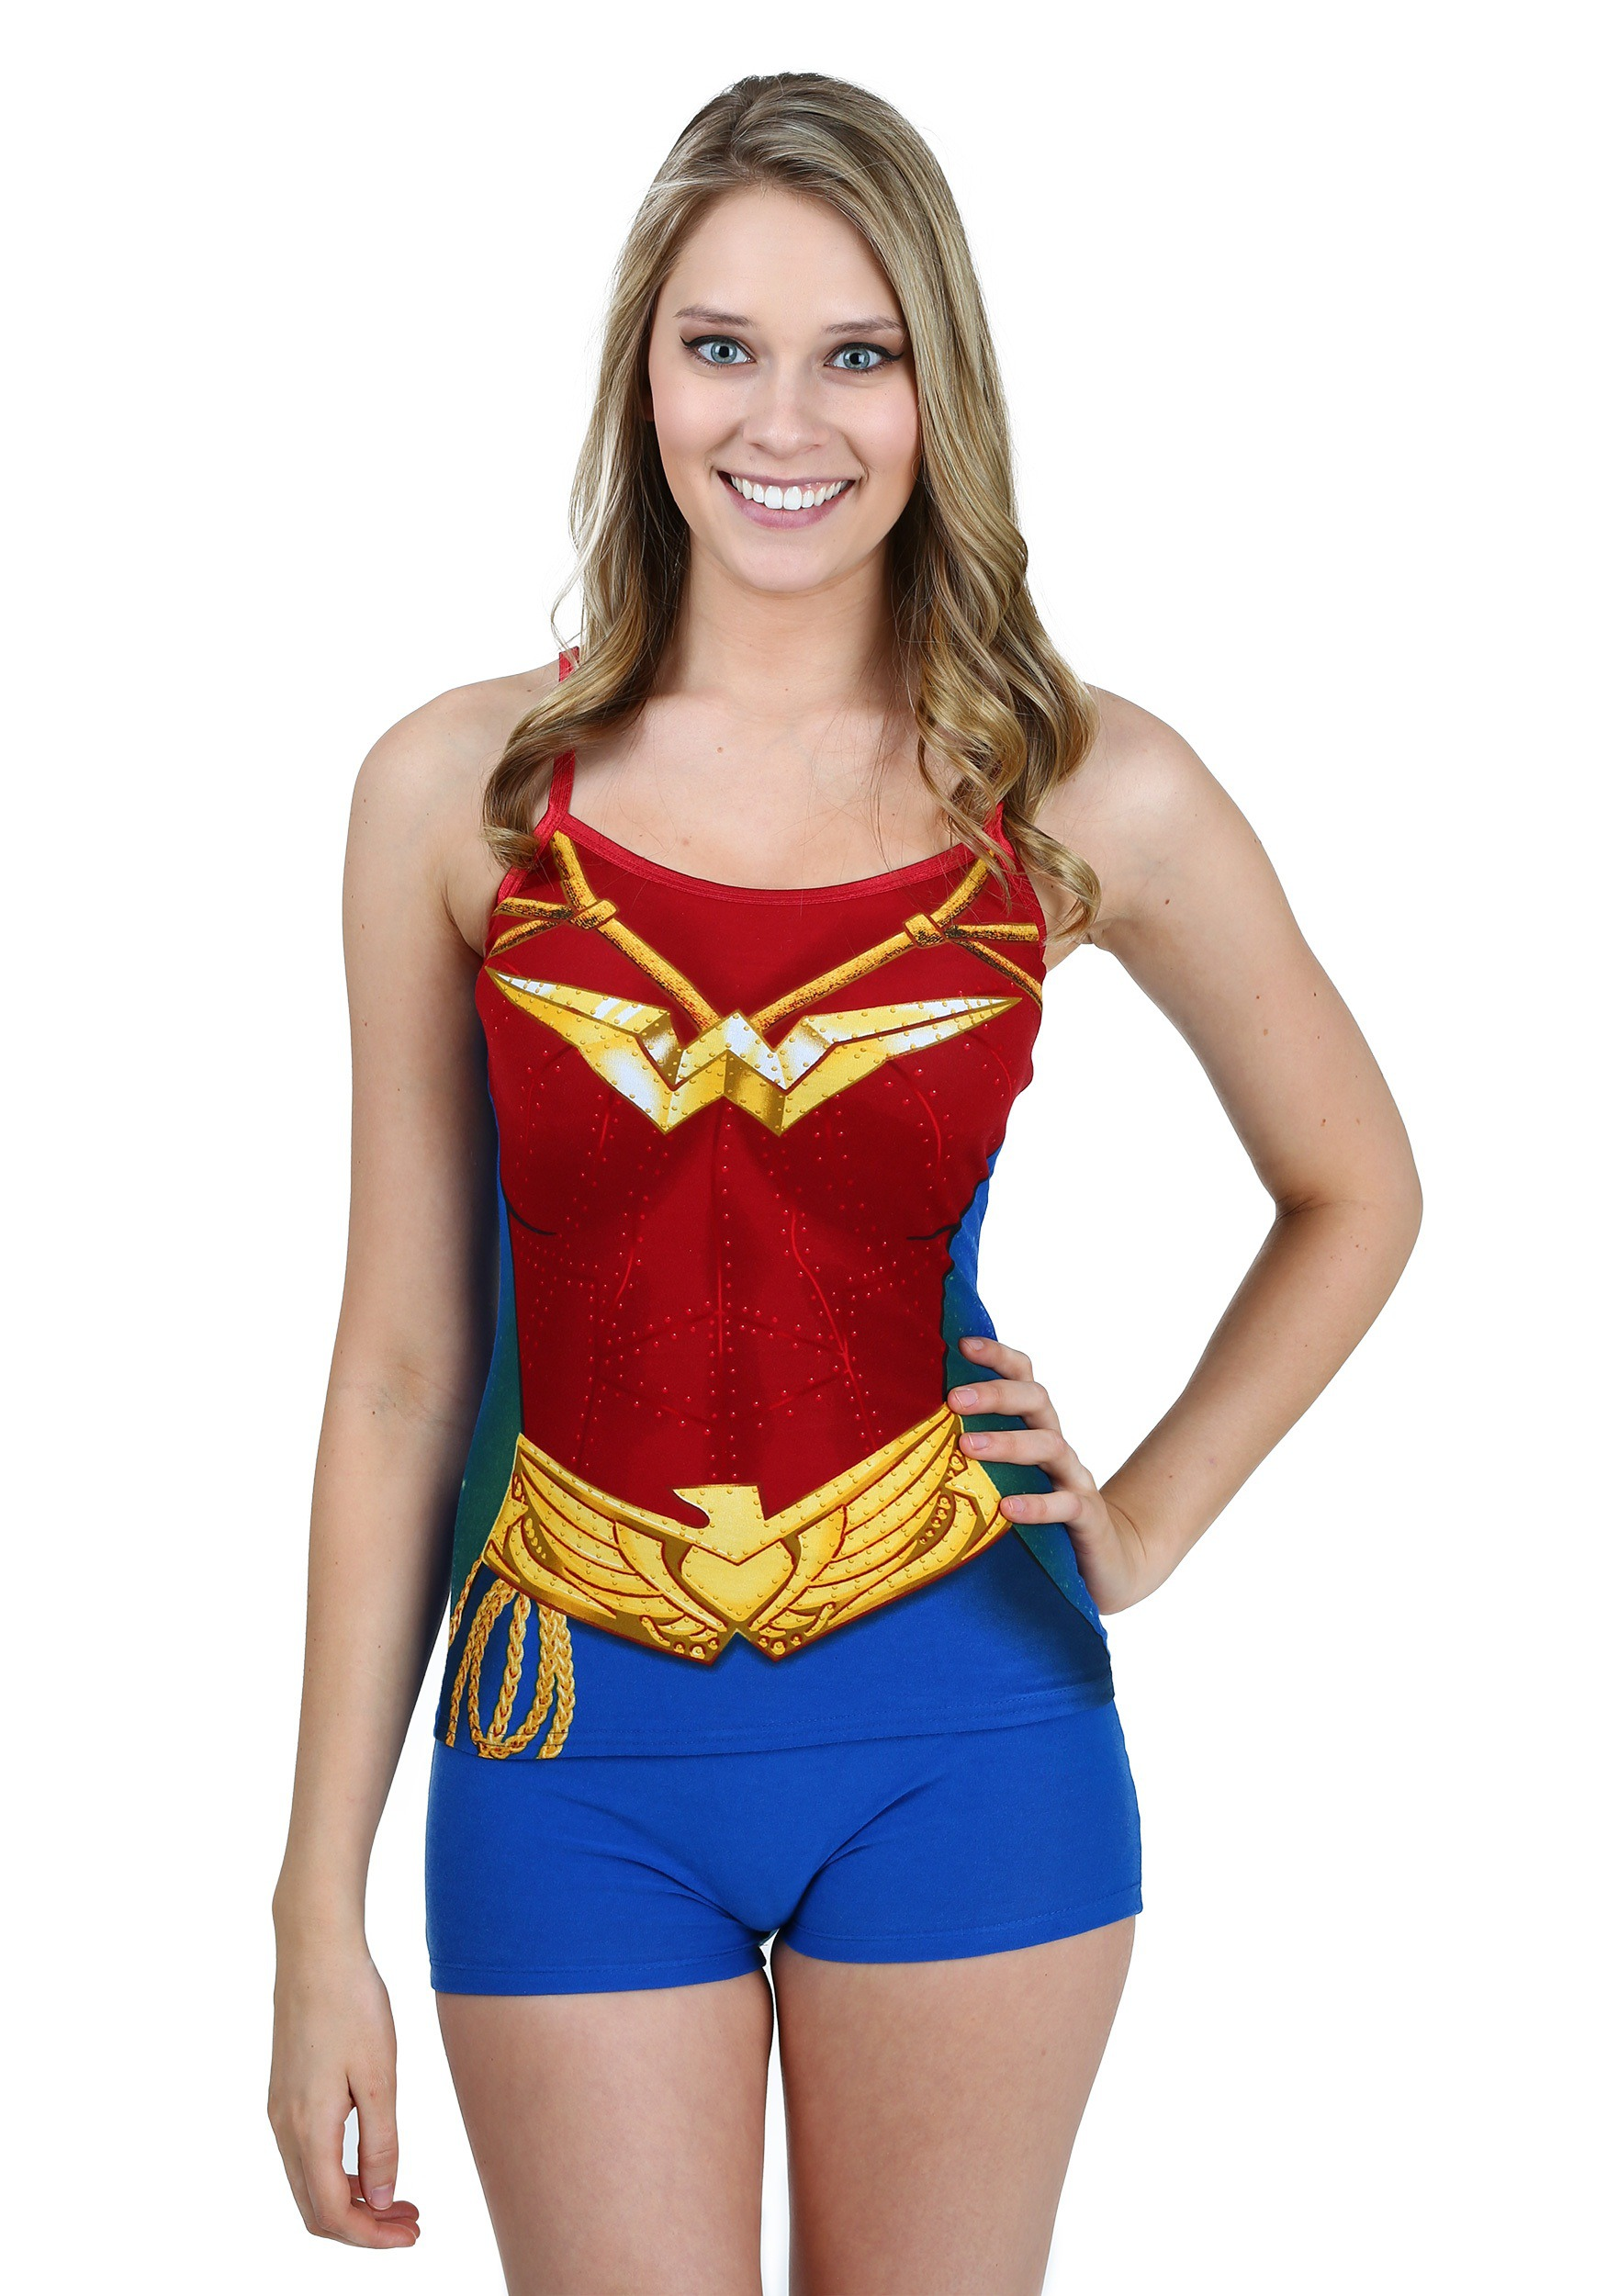 Become a Amazonian princess with a Wonder Woman costume! Keep on top of the movie trends with these sexy Wonder Woman costumes from Yandy! Yandy has enough Wonder Woman adult costumes for an entire island of Amazonians!